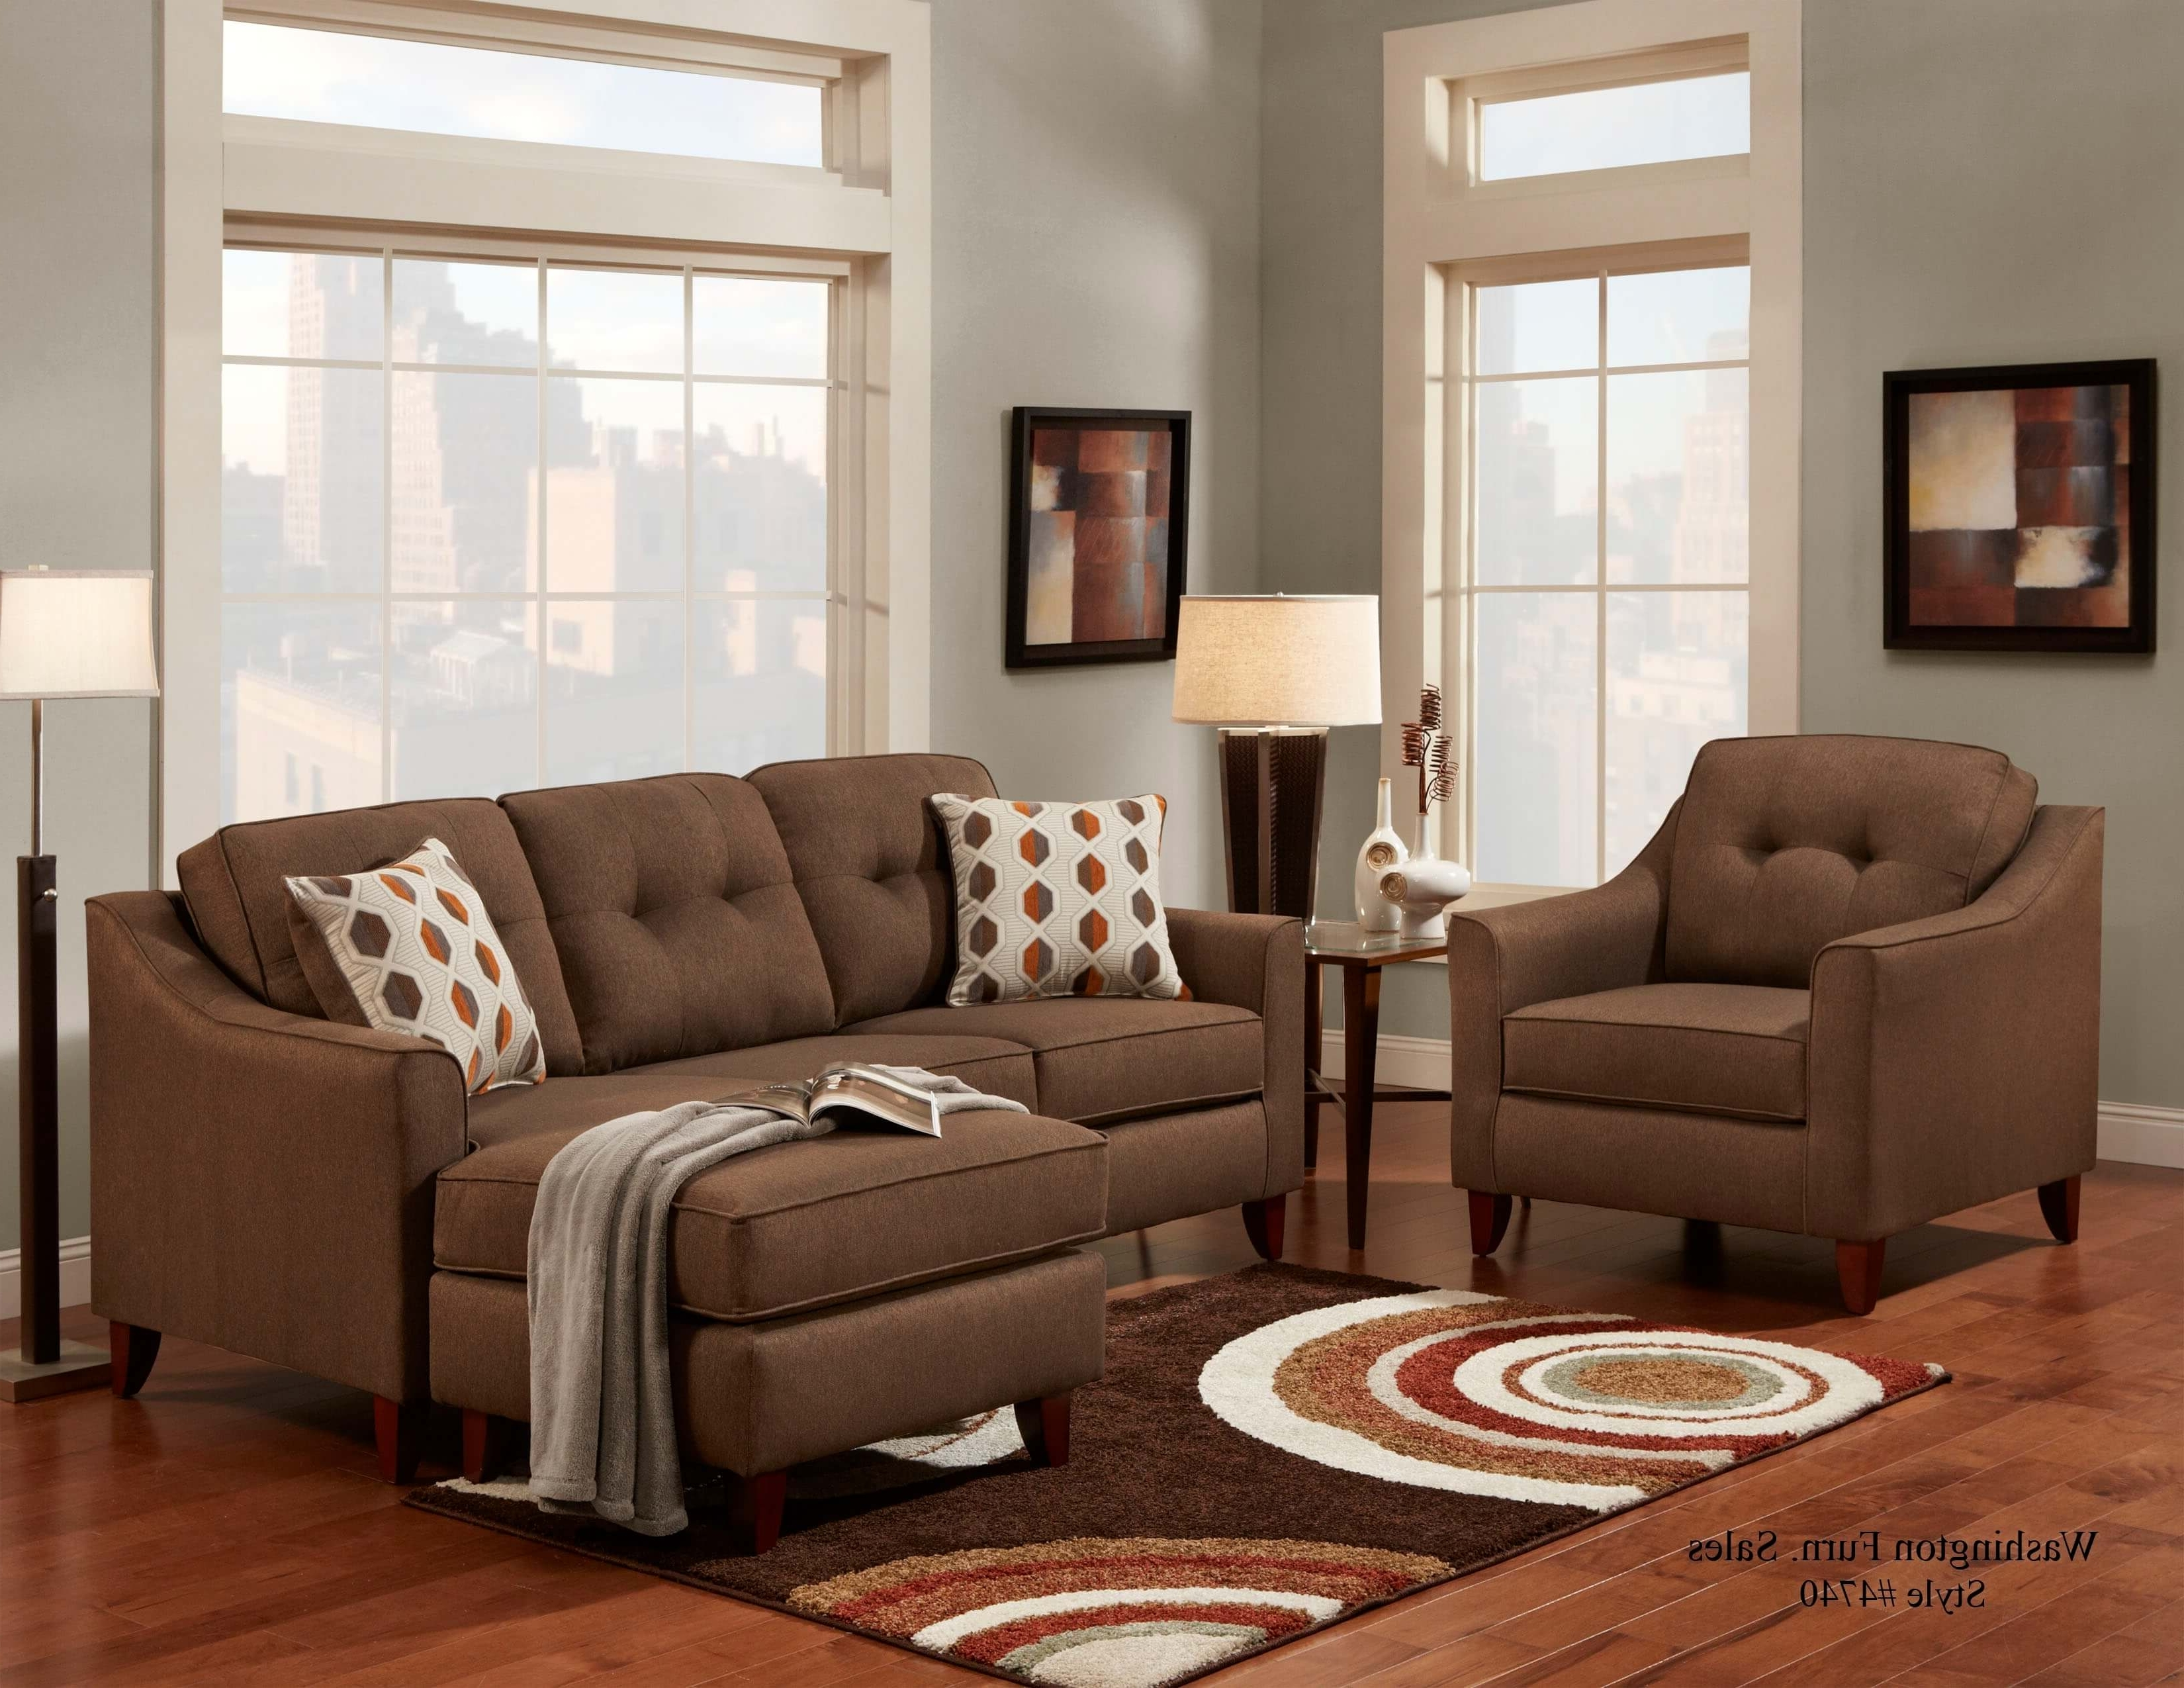 Sectional Sofa Sets Within Trendy Chocolate Sectional Sofas (View 5 of 15)